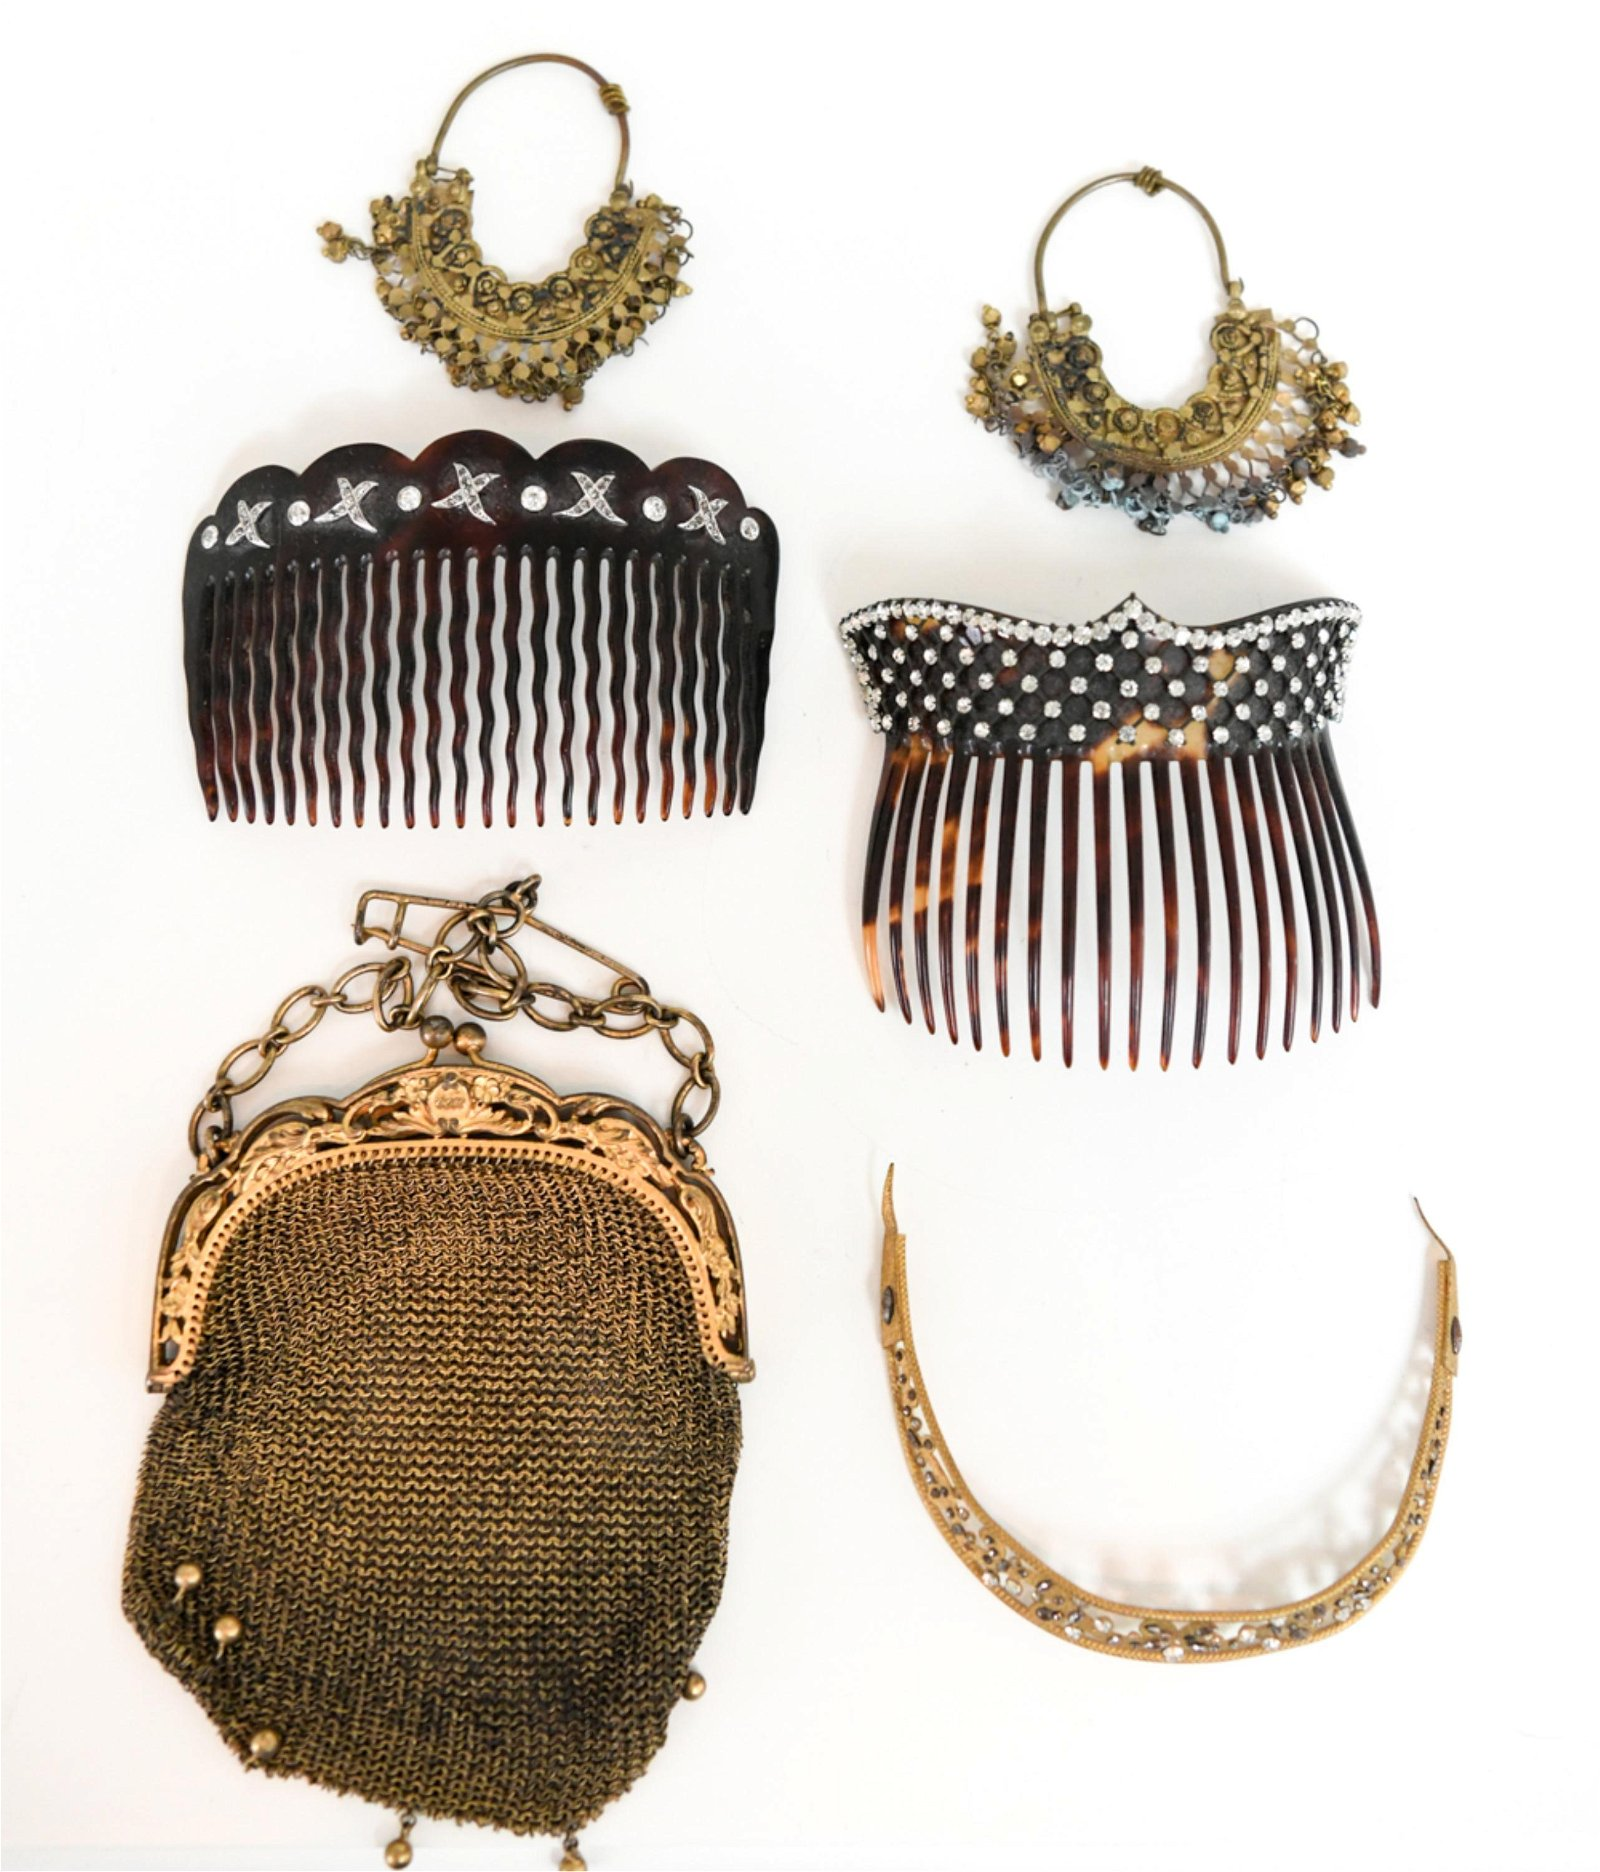 ANTIQUE ACCESSORY GROUPING